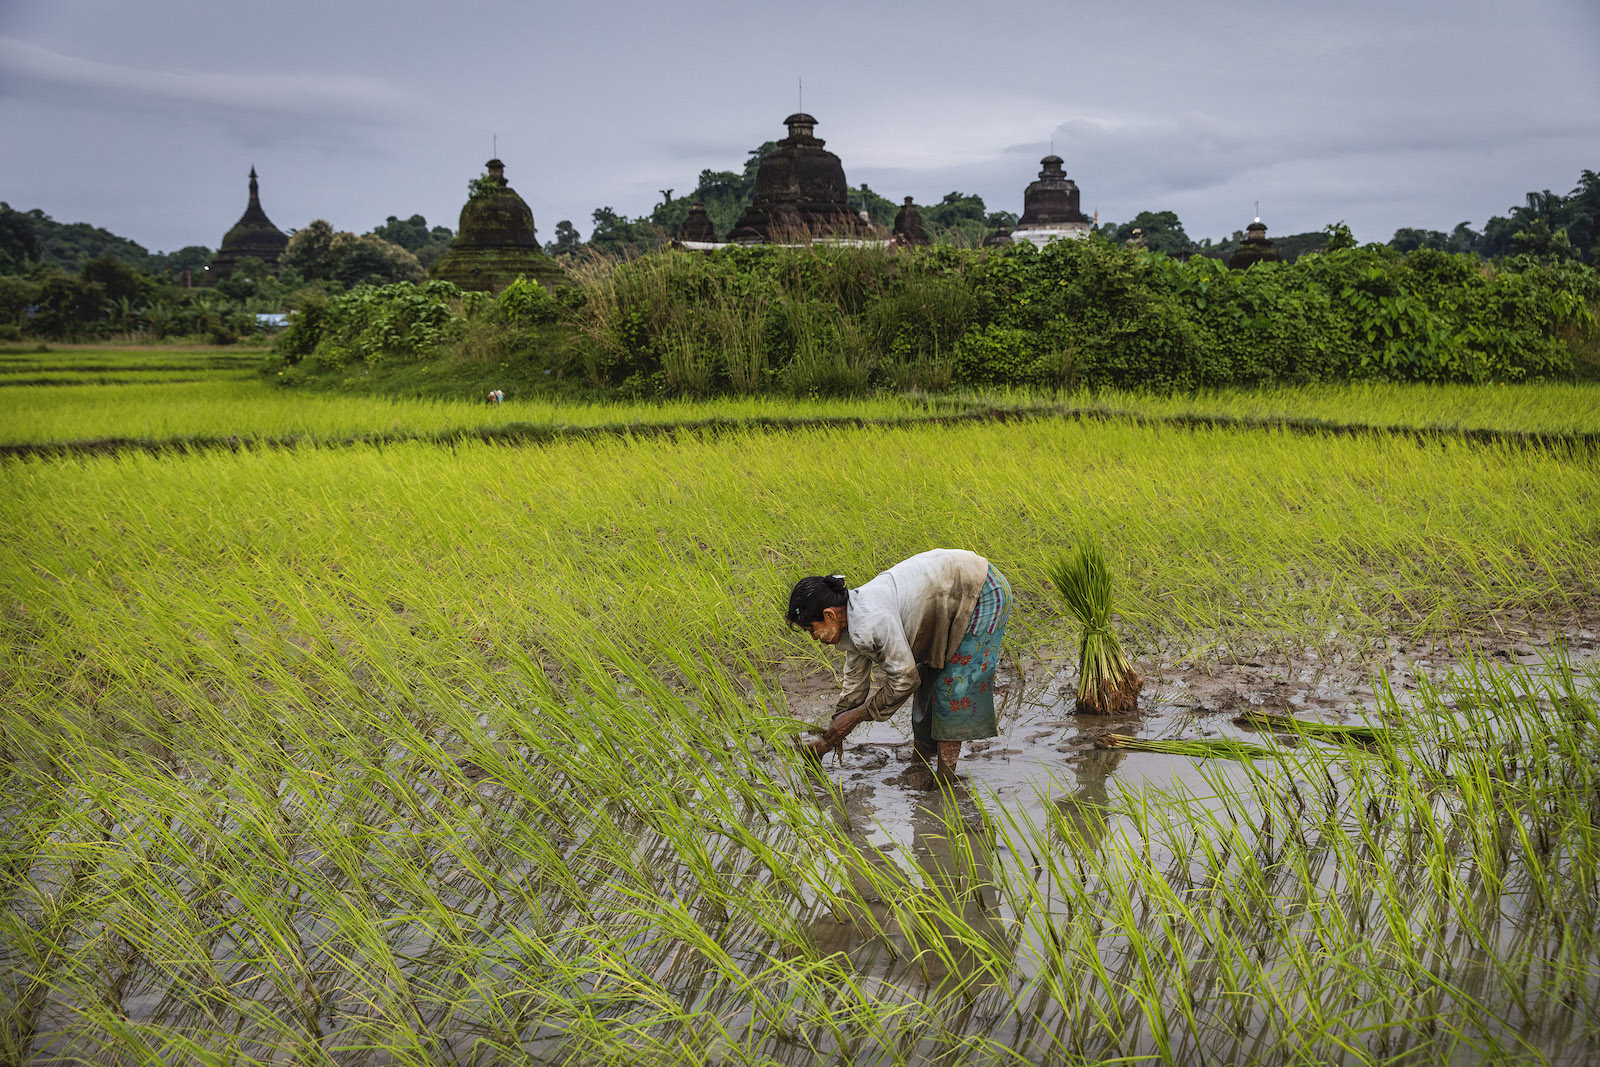 A woman plants rice near a historic brick pagoda in Mrauk-U Township, Rakhine State on August 21. (Hkun Lat | Frontier)